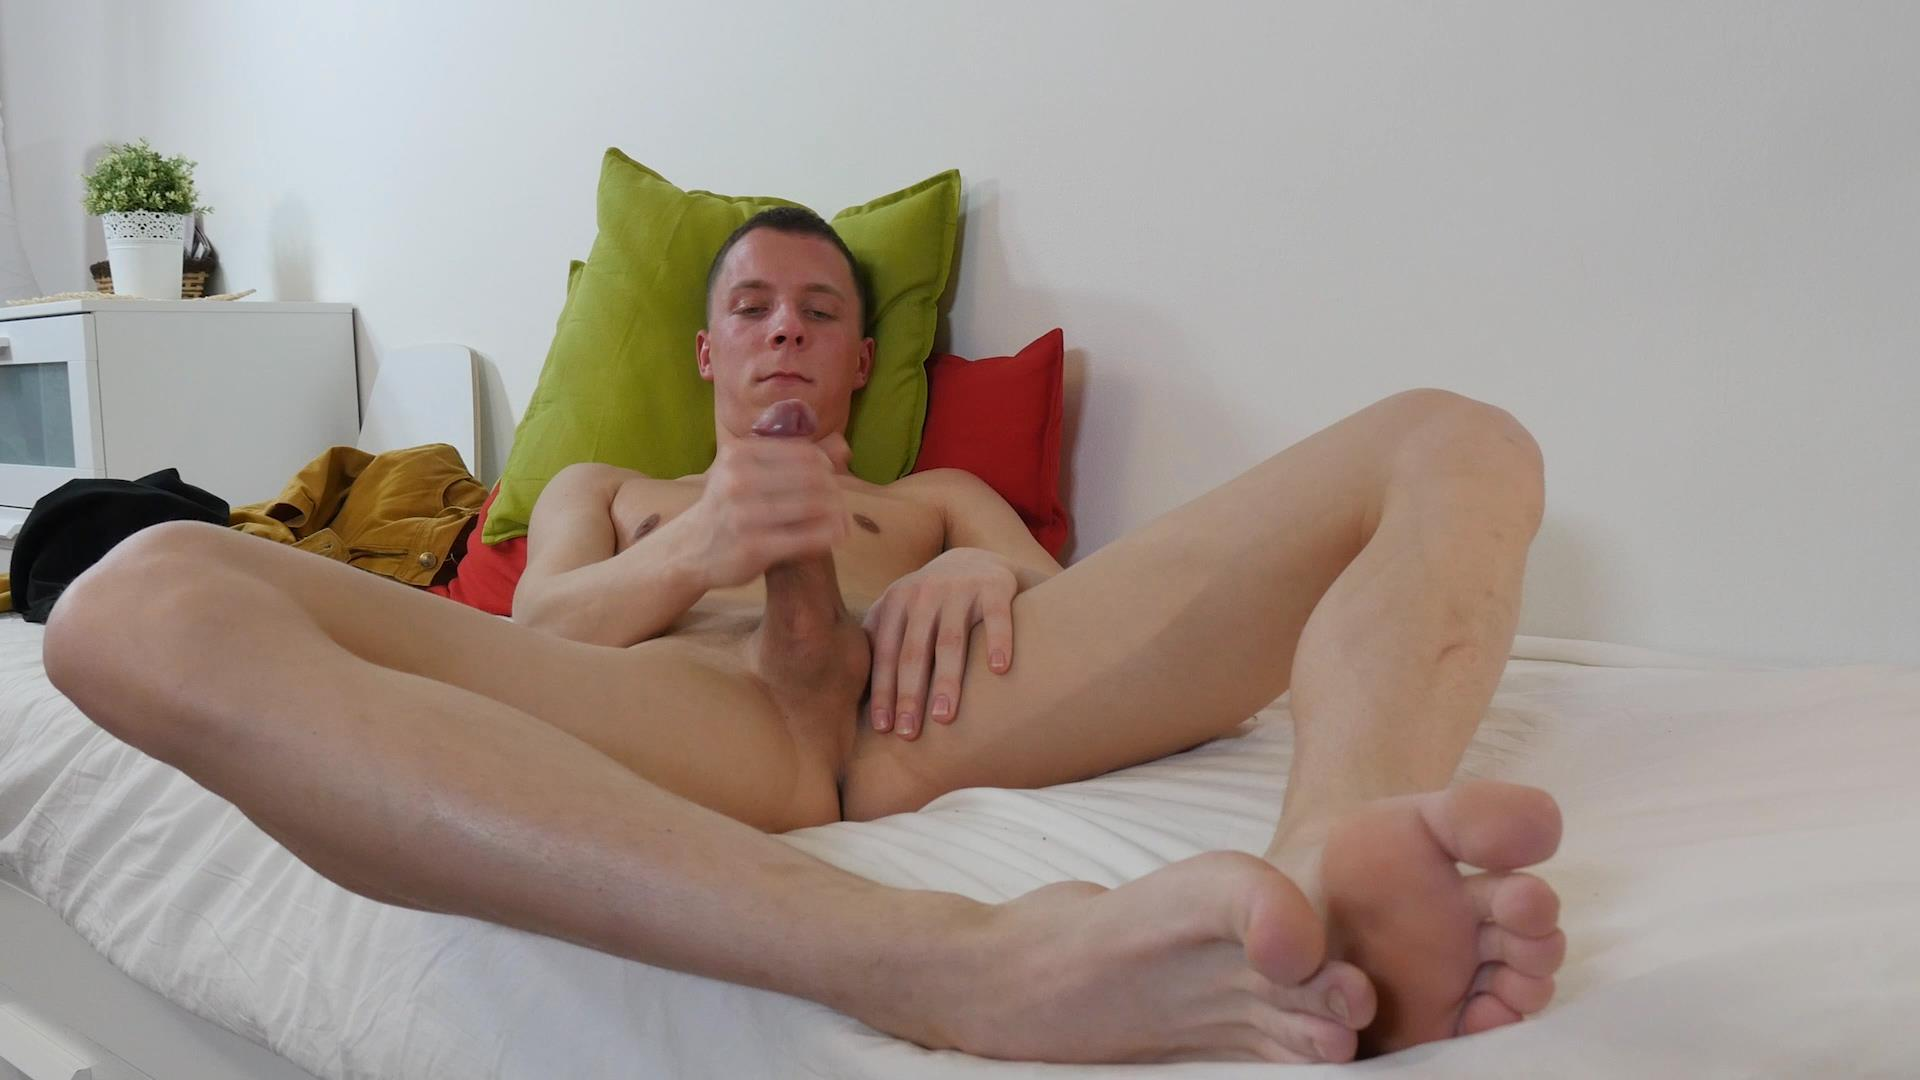 Twink-Boys-Party-Andrew-Kitt-Twink-With-Big-Uncut-Cock-Masturbation-Amateur-Gay-Porn-14 Twink Andrew Kitt Rubbing A Load Out Of His Big Uncut Cock